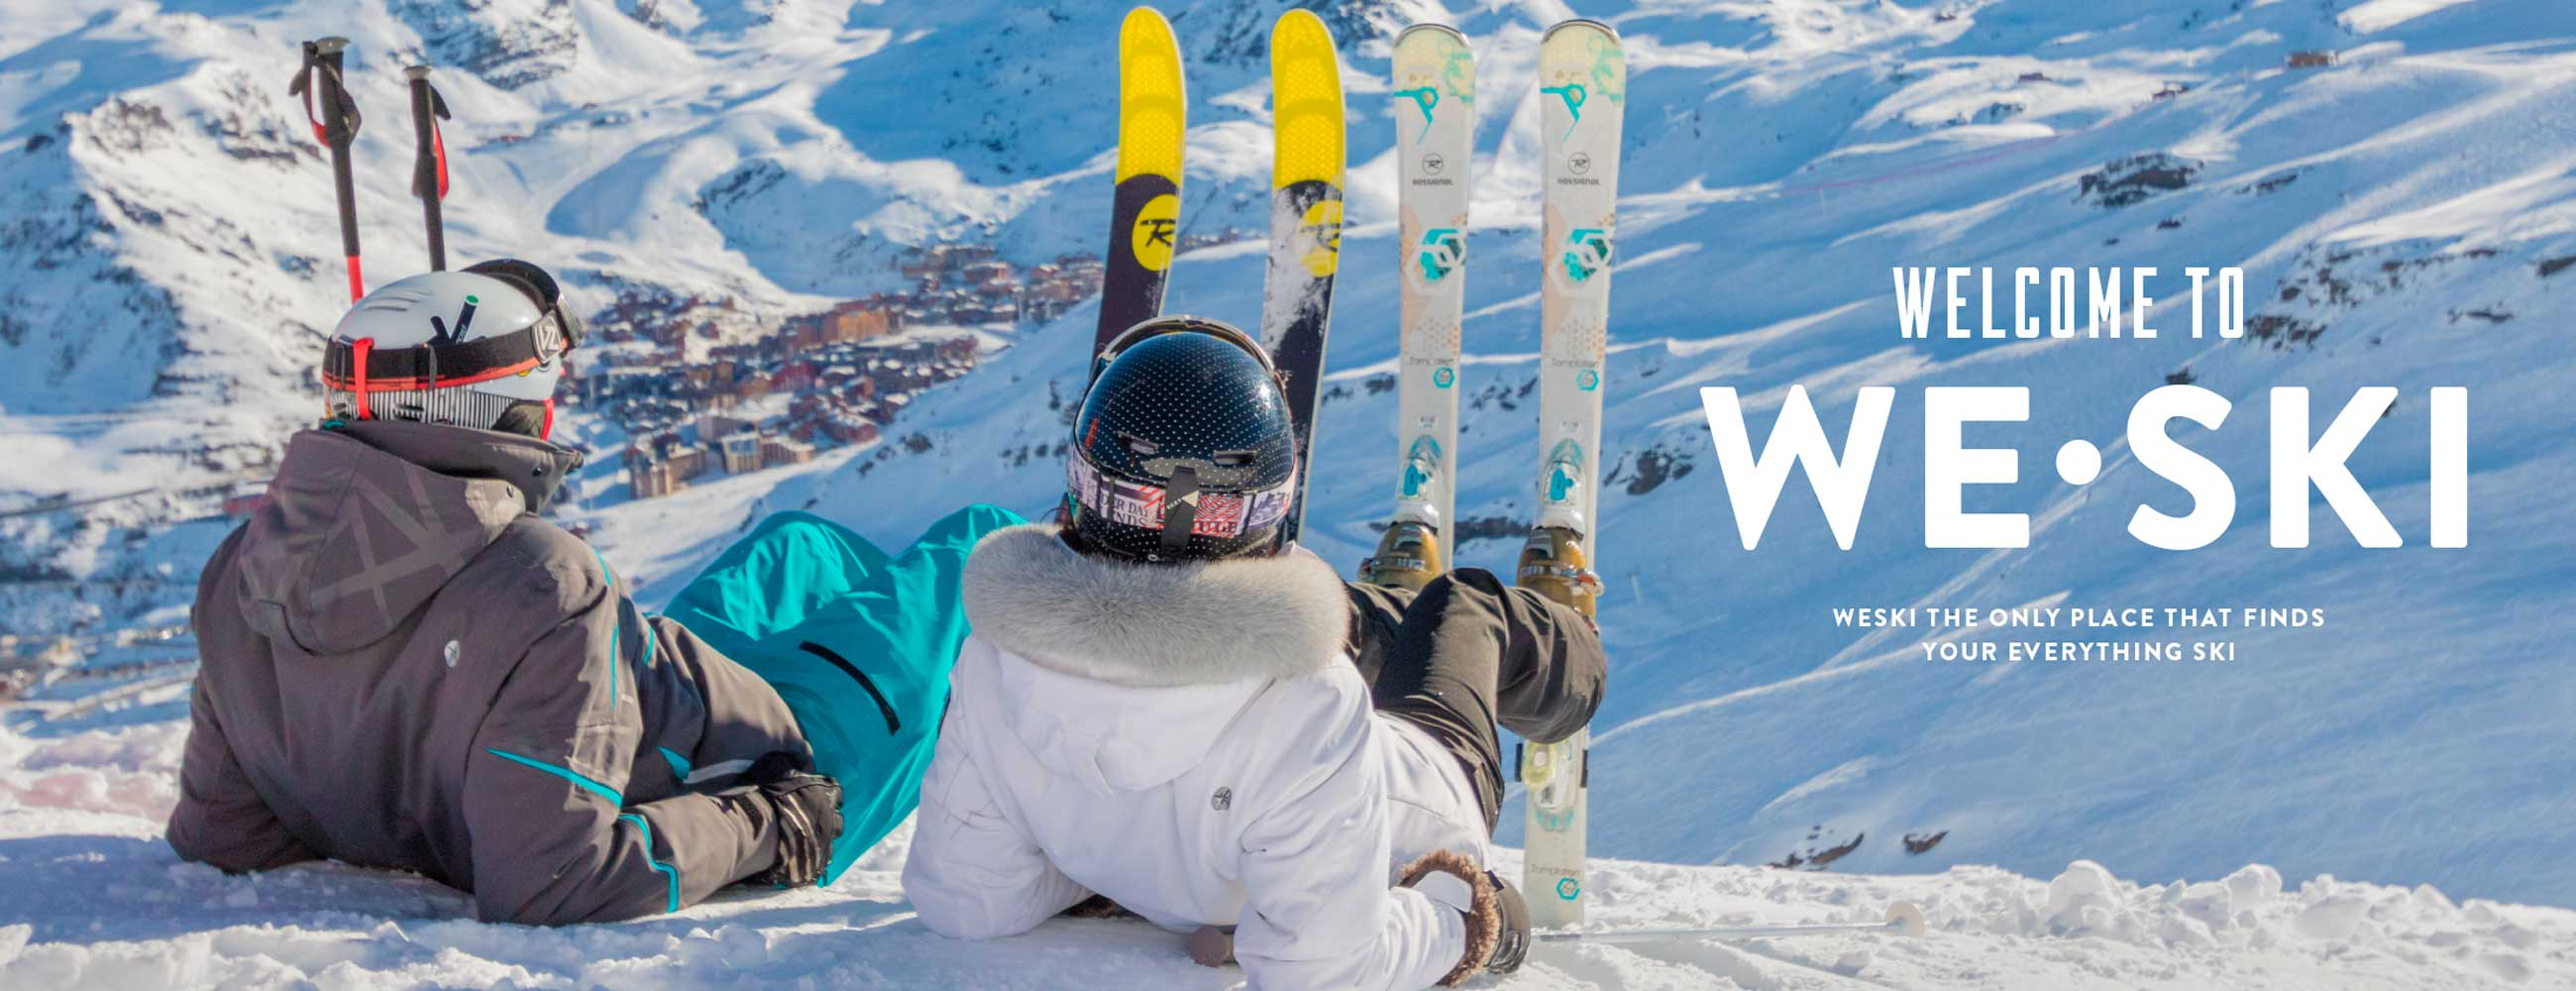 5% off Ski Holidays